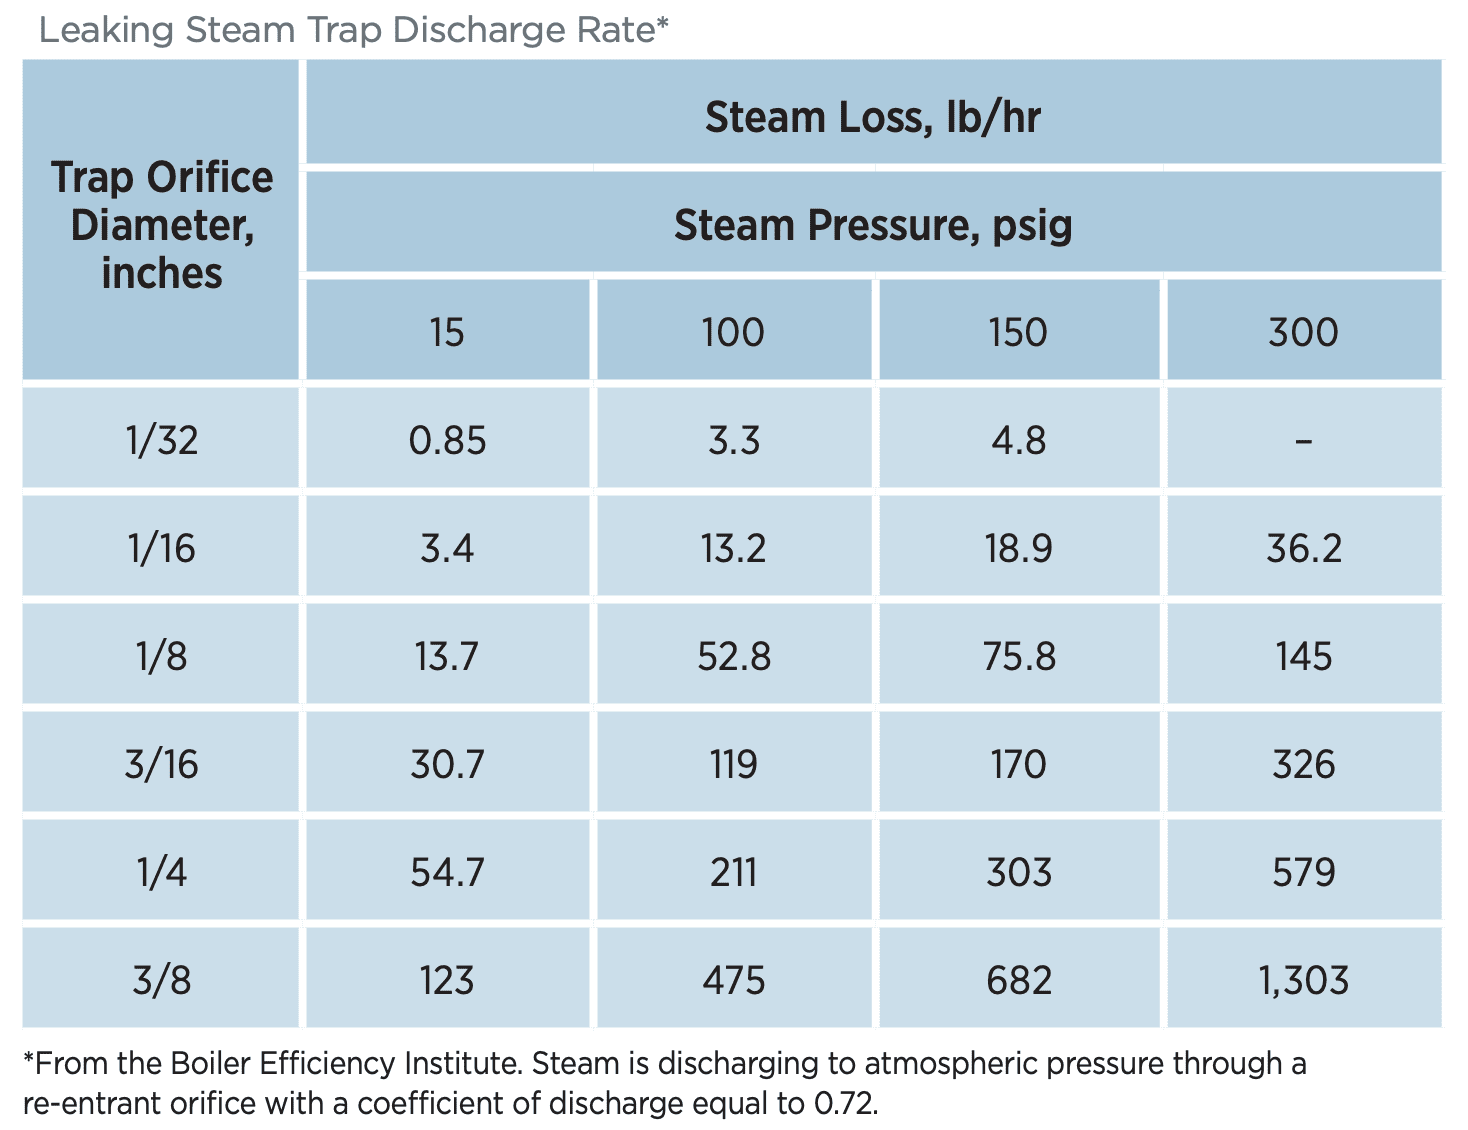 Table: Leaking Steam Trap Discharge Rate